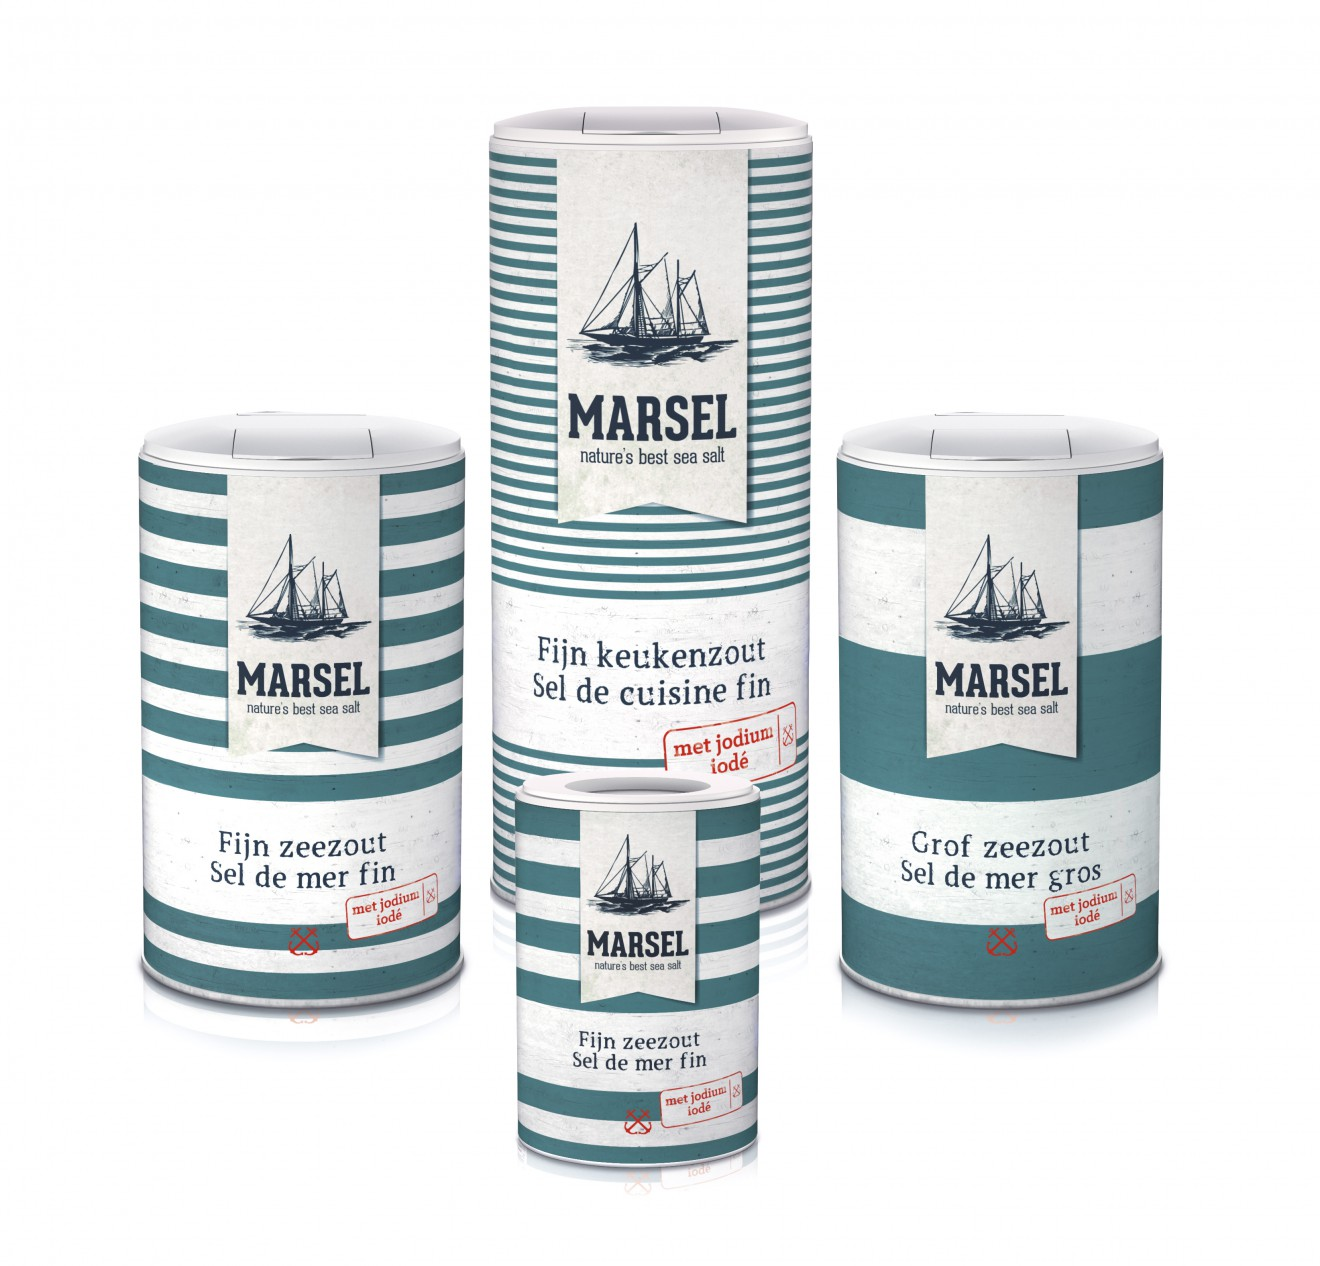 Quatre Mains package design - sea salt, marsel, packaging design